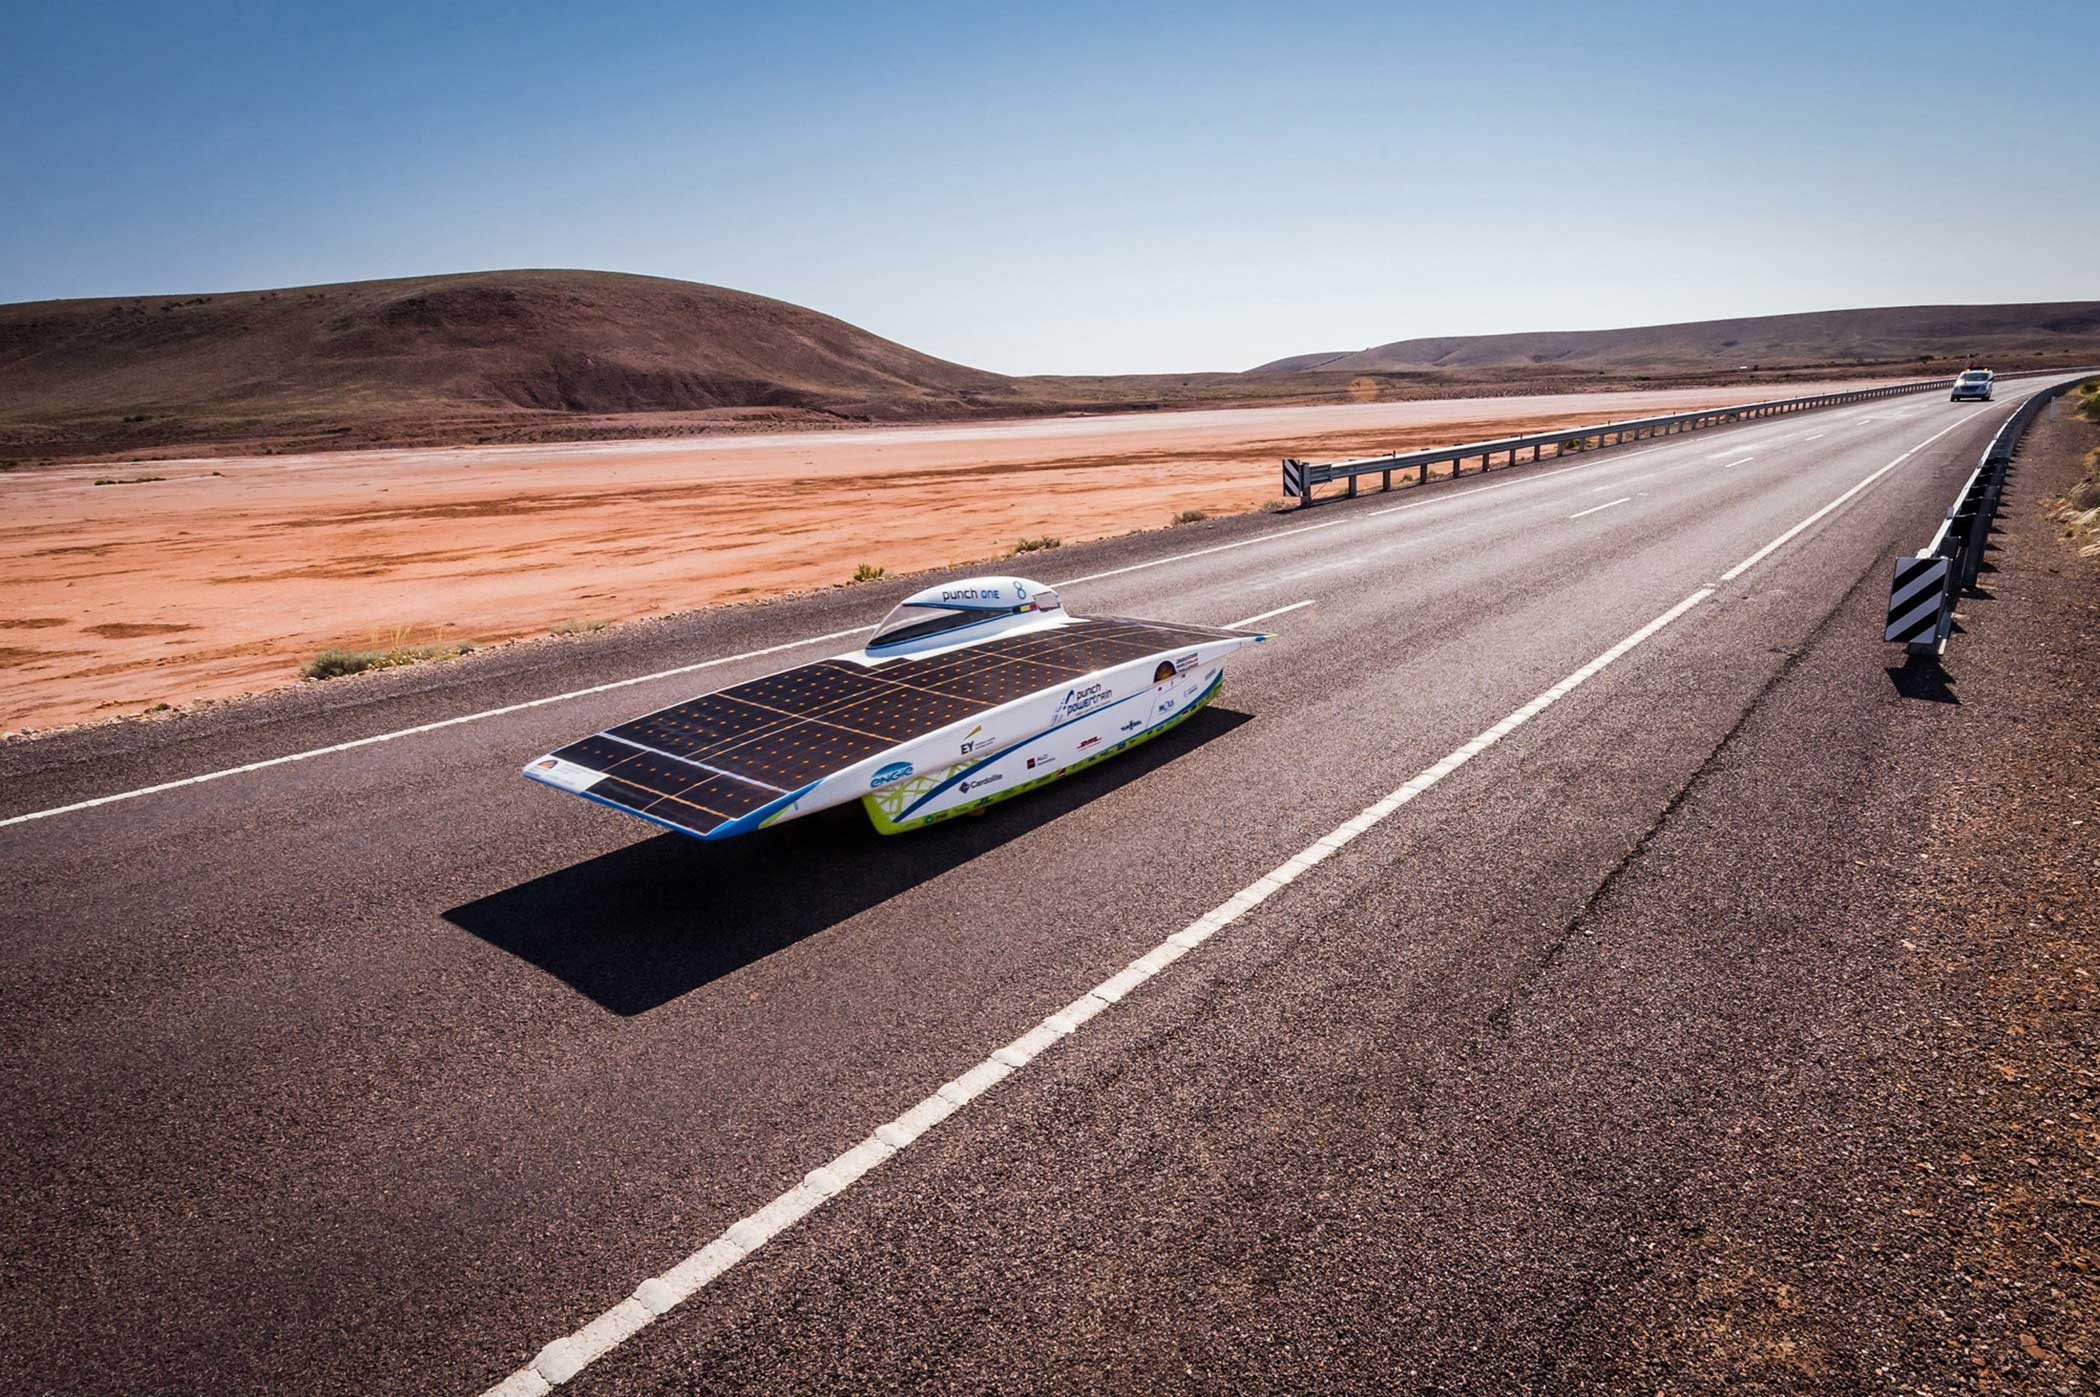 The Belgian Punch Powertrain Solar Team near Glendambo as the team races on Day 4 of the 2015 World Solar Challenge on Oct. 21, 2015. 45 Solar cars from 25 different countries participated in the 3,000 km race from Darwin to Adelaide, Australia